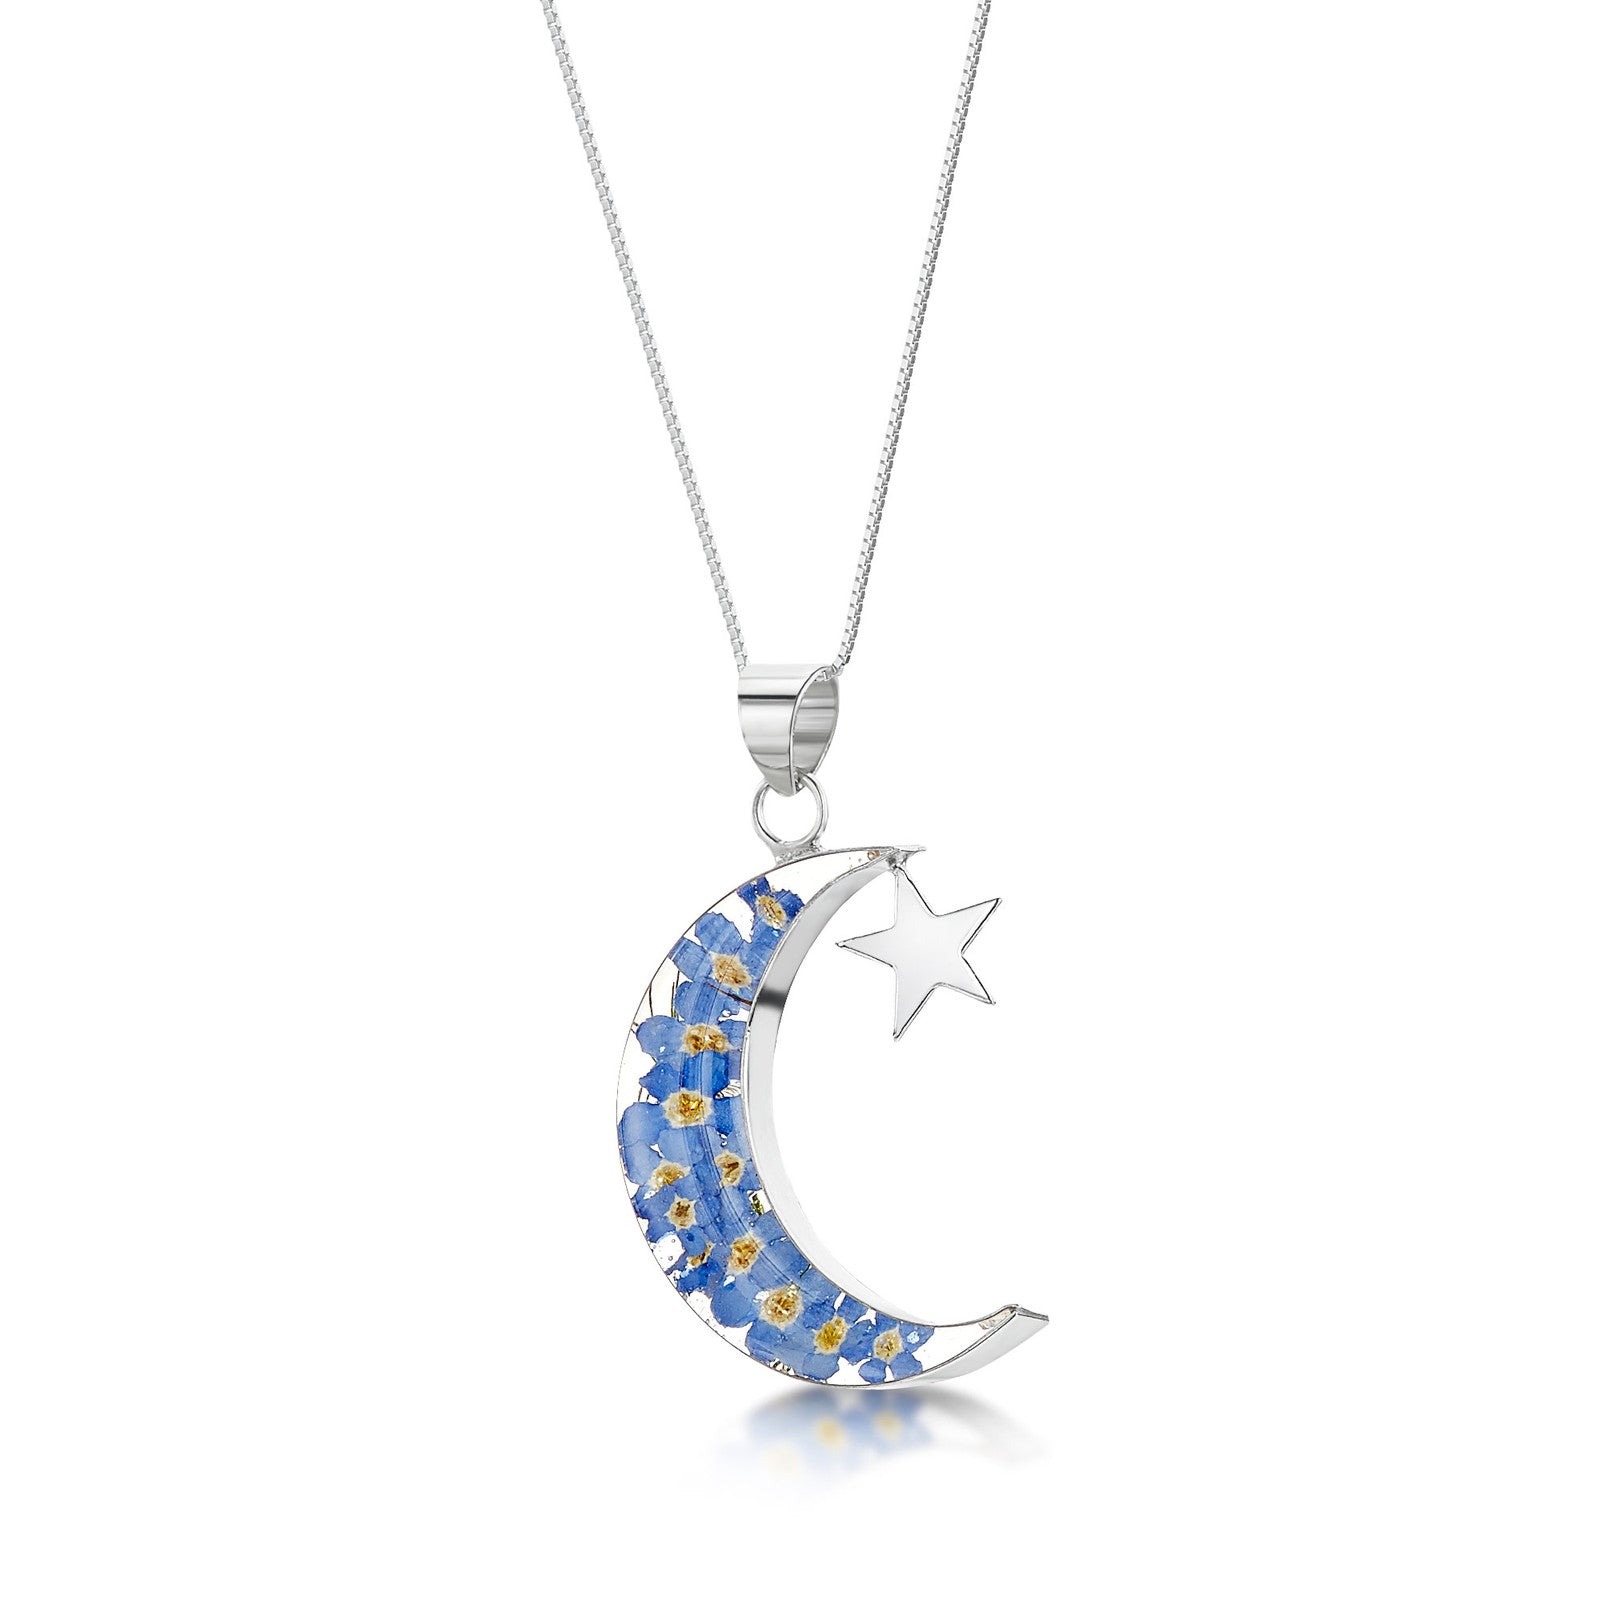 Silver Necklace - Forget me not - Moon and Star